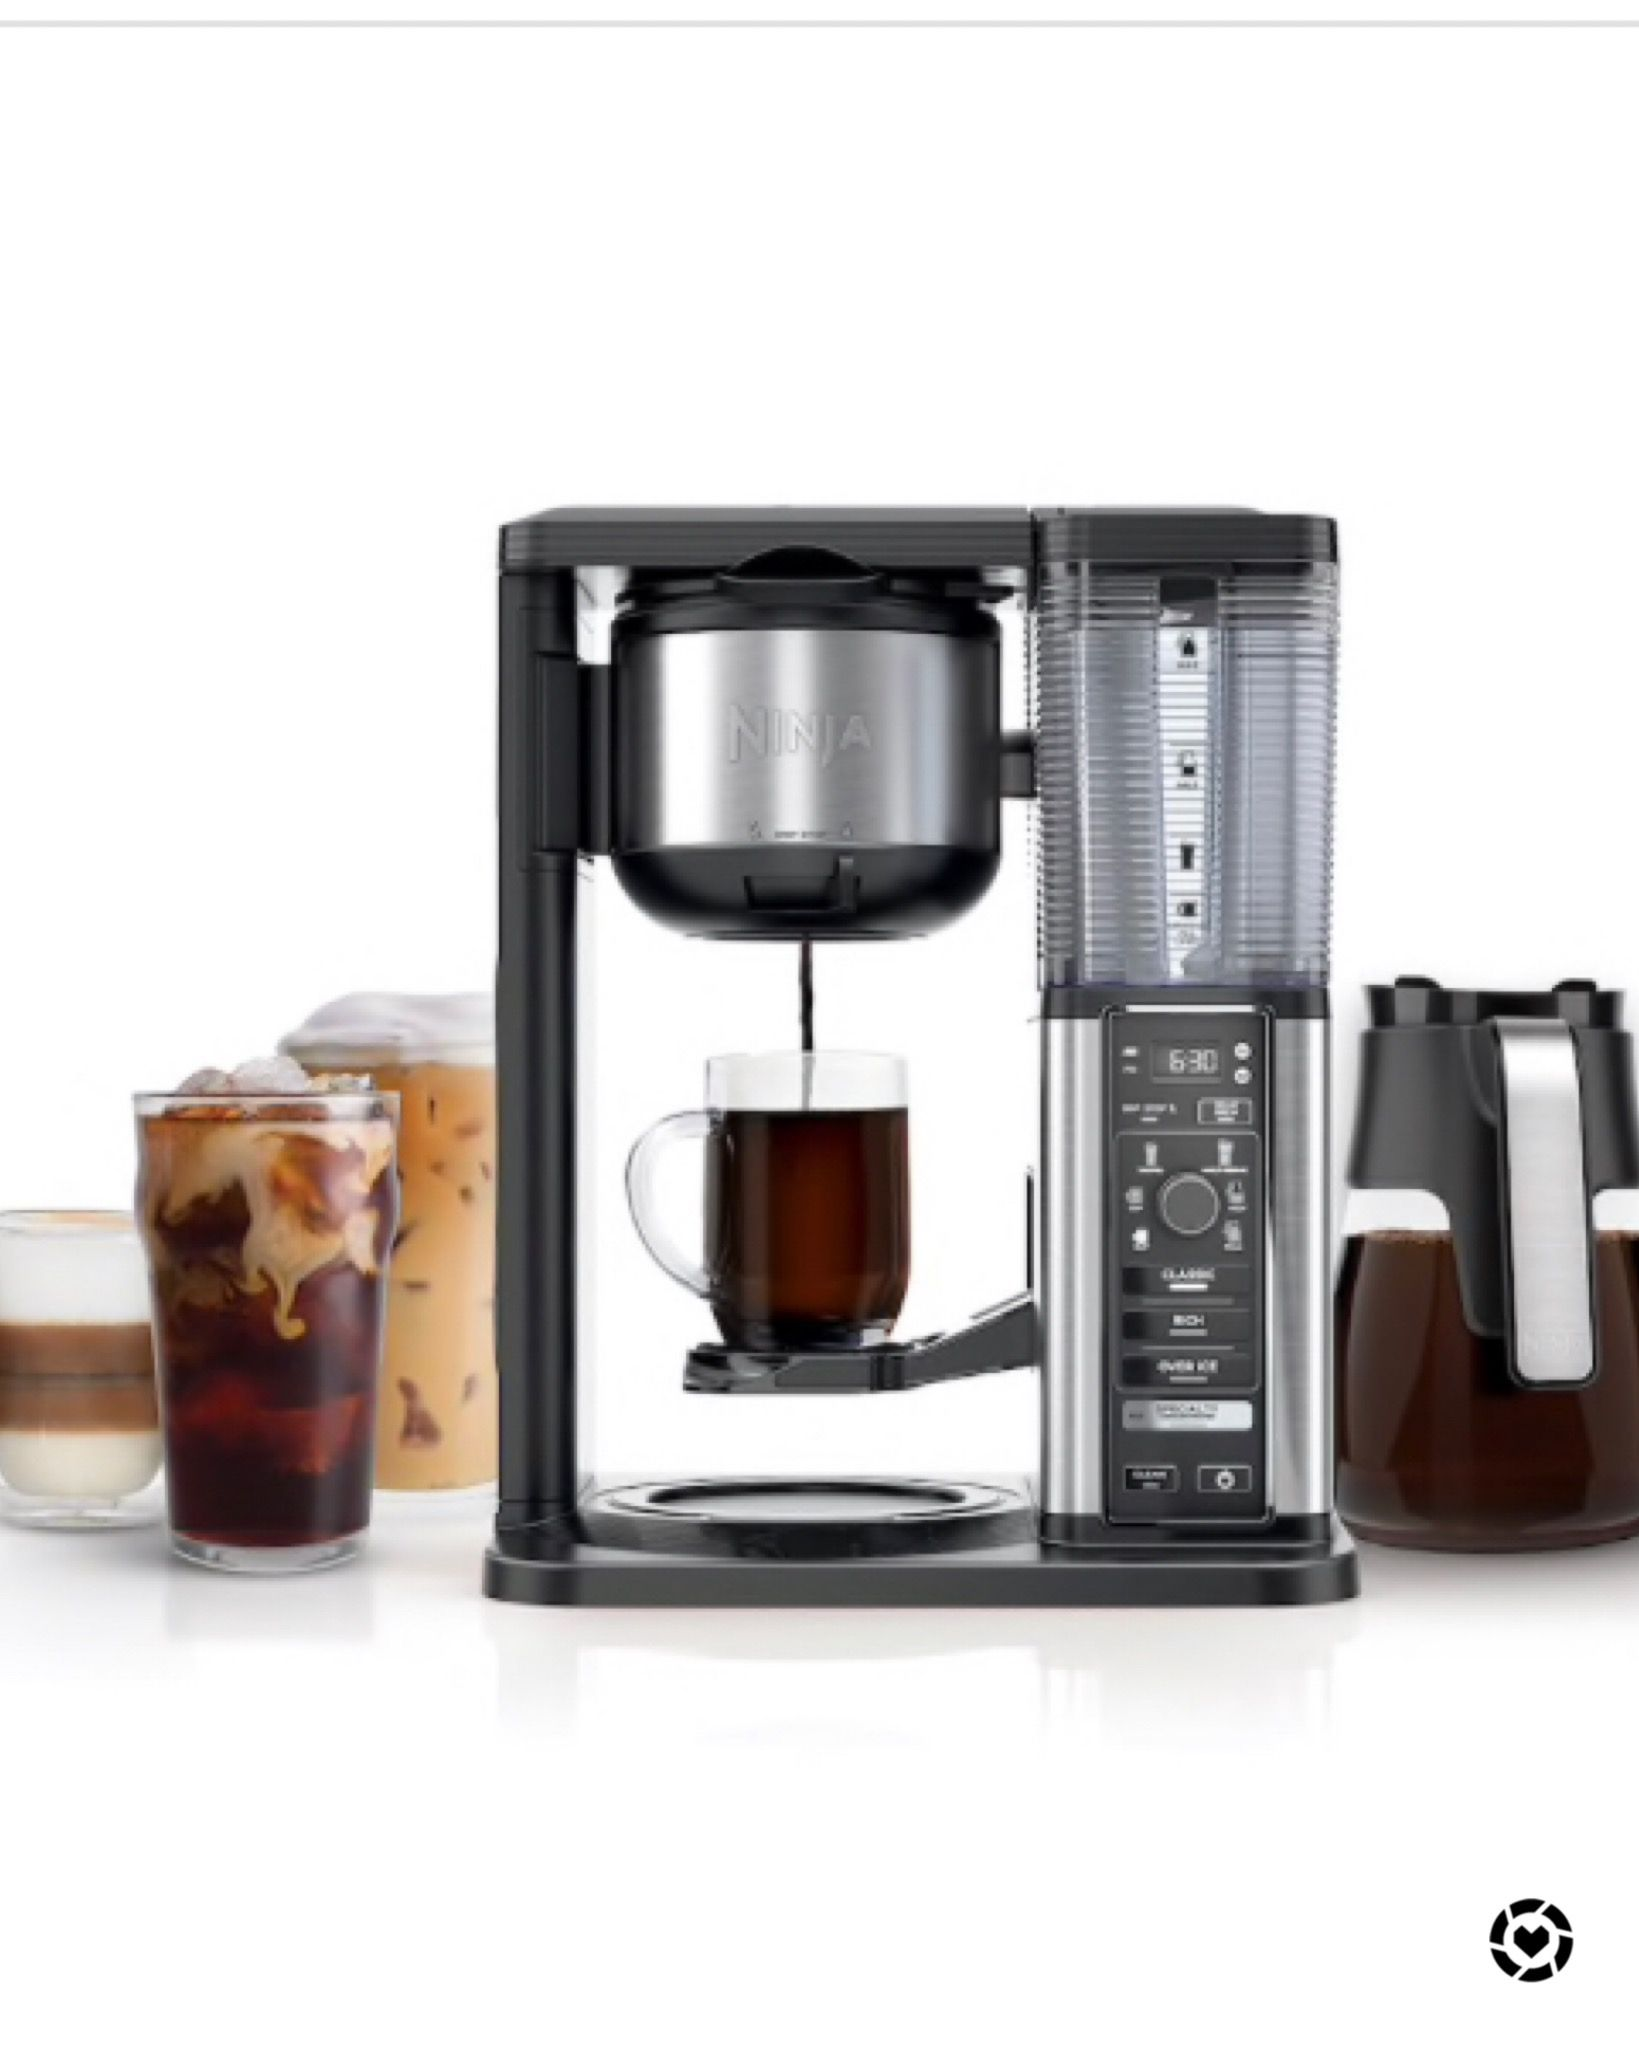 Ninja Coffee Maker SALE Ninja coffee maker, Coffee maker